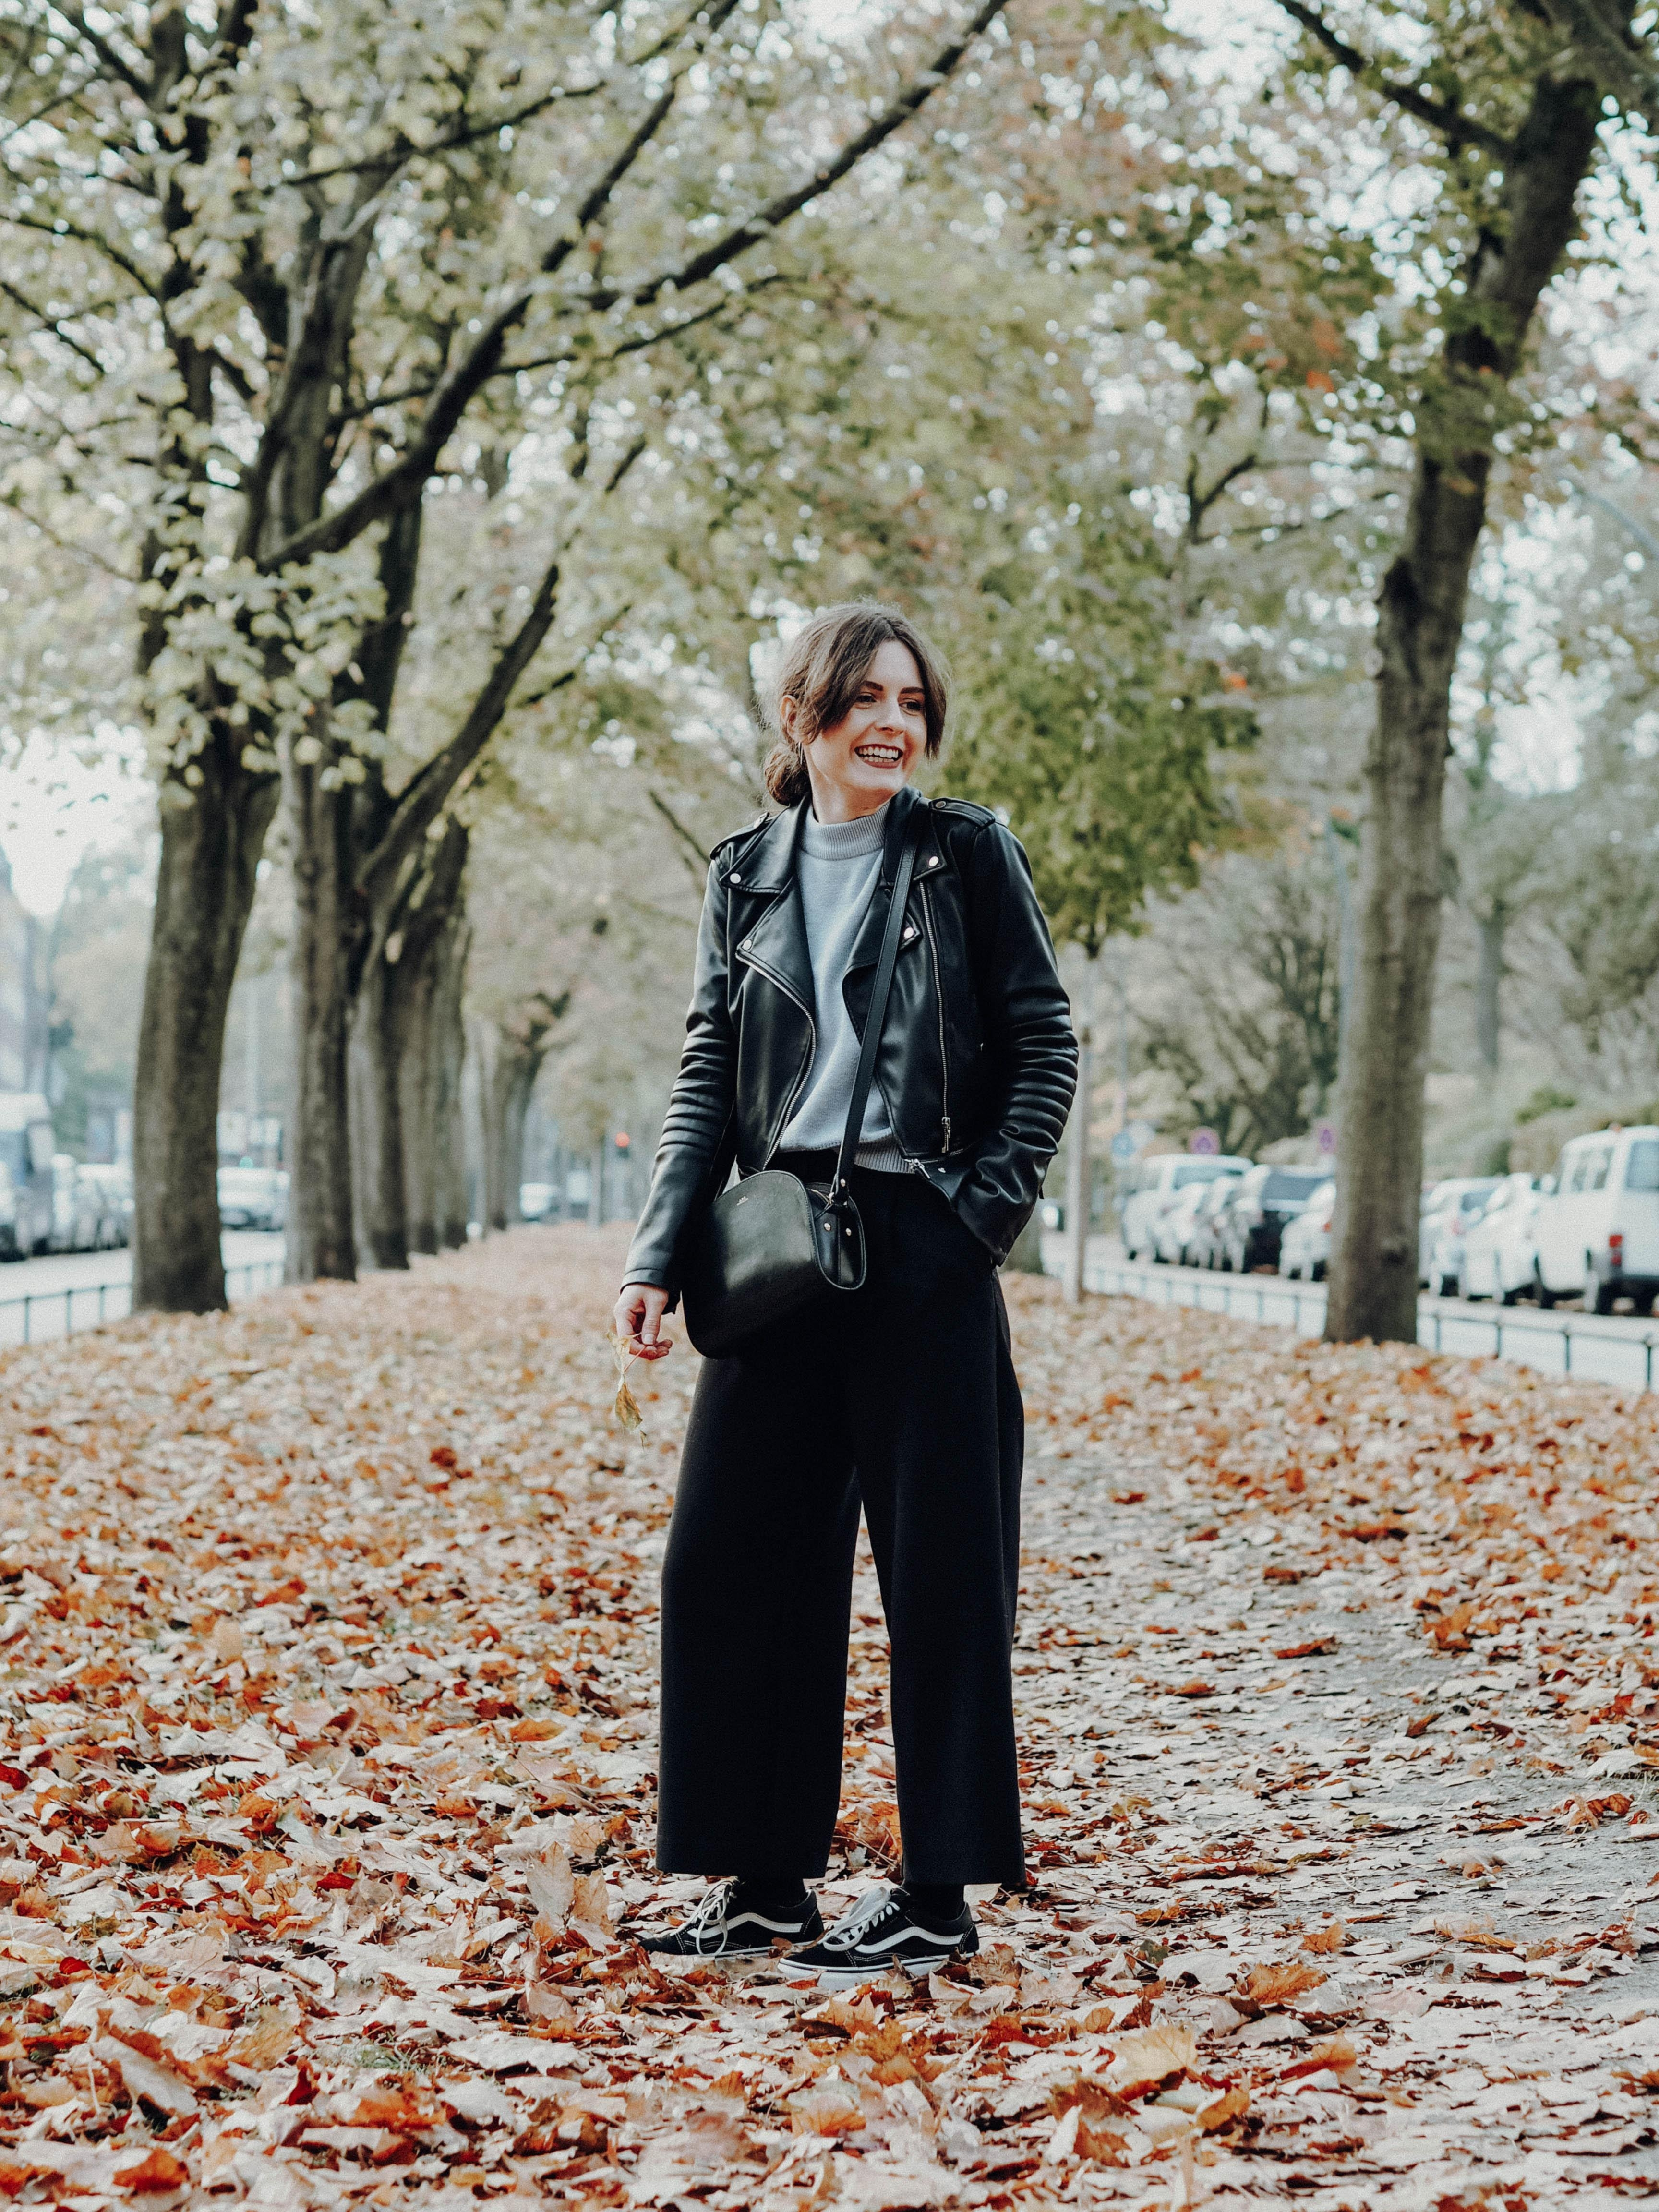 Happy im herbst herbstoutfit culotte lederjacke ootd outfit fashion handtasche  54927f28 f7e1 4041 8ed1 986119df248e